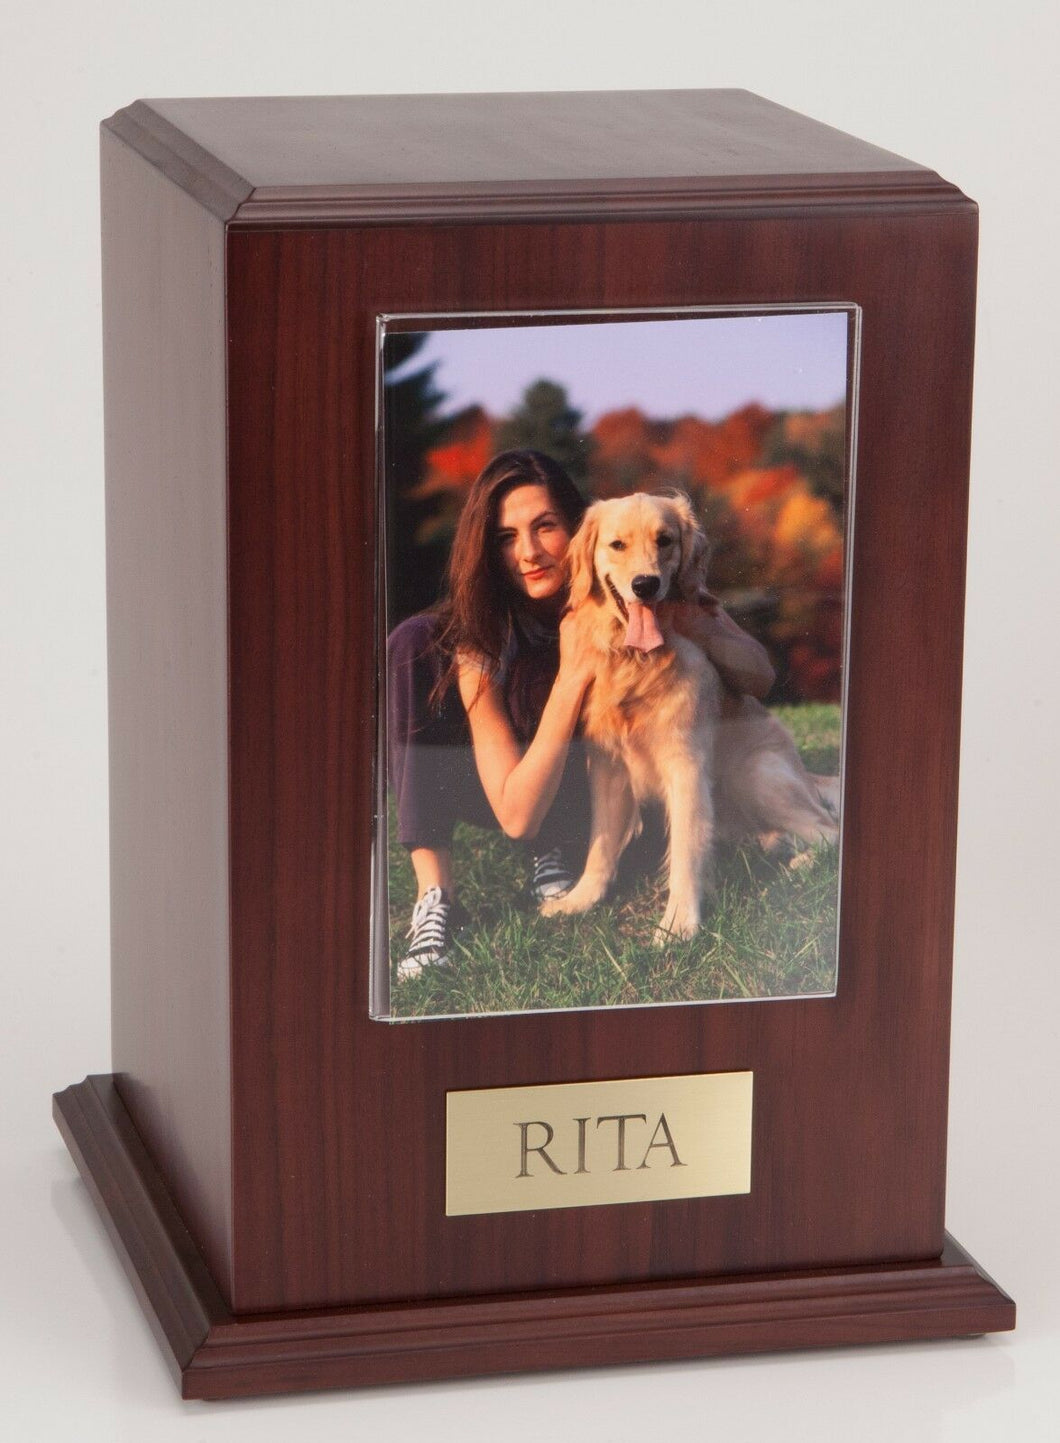 Large 110 Cubic Ins Walnut Pet Tower Photo Urn for Ashes w/Engravable Nameplate